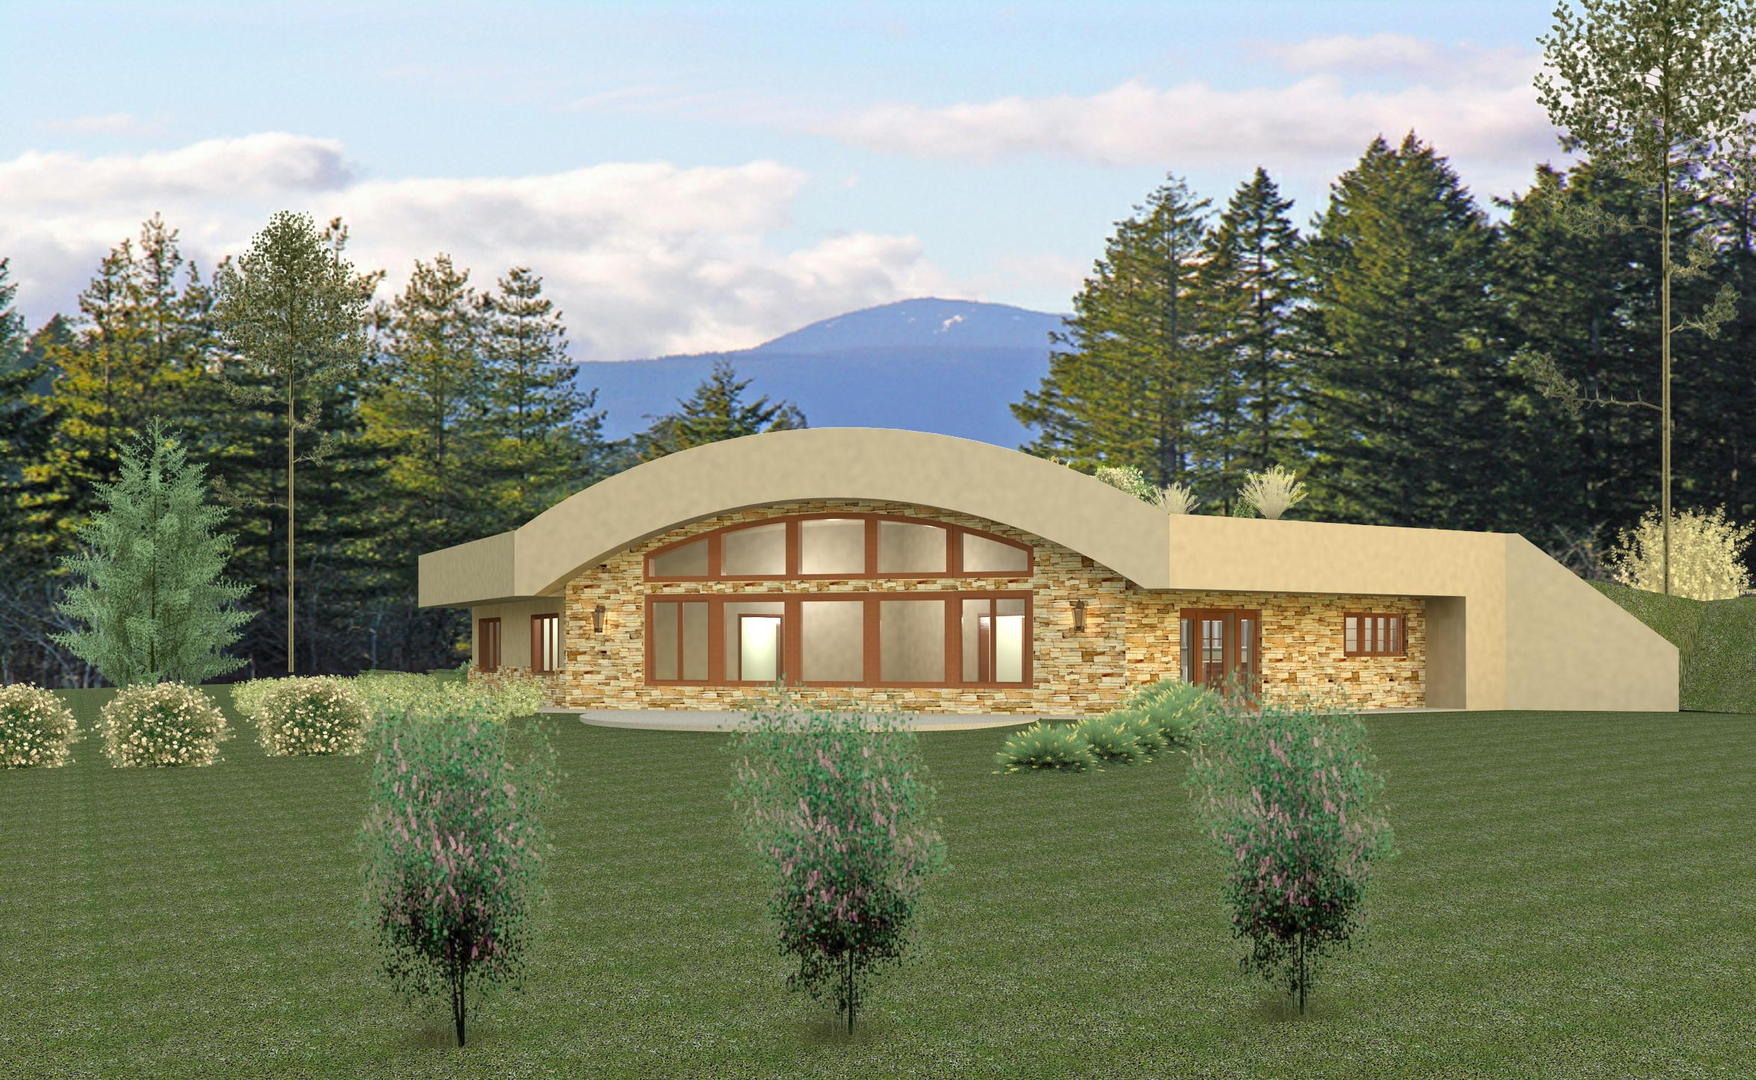 earth home plans|earthsheltered|berm home|earth homes|sheltered home